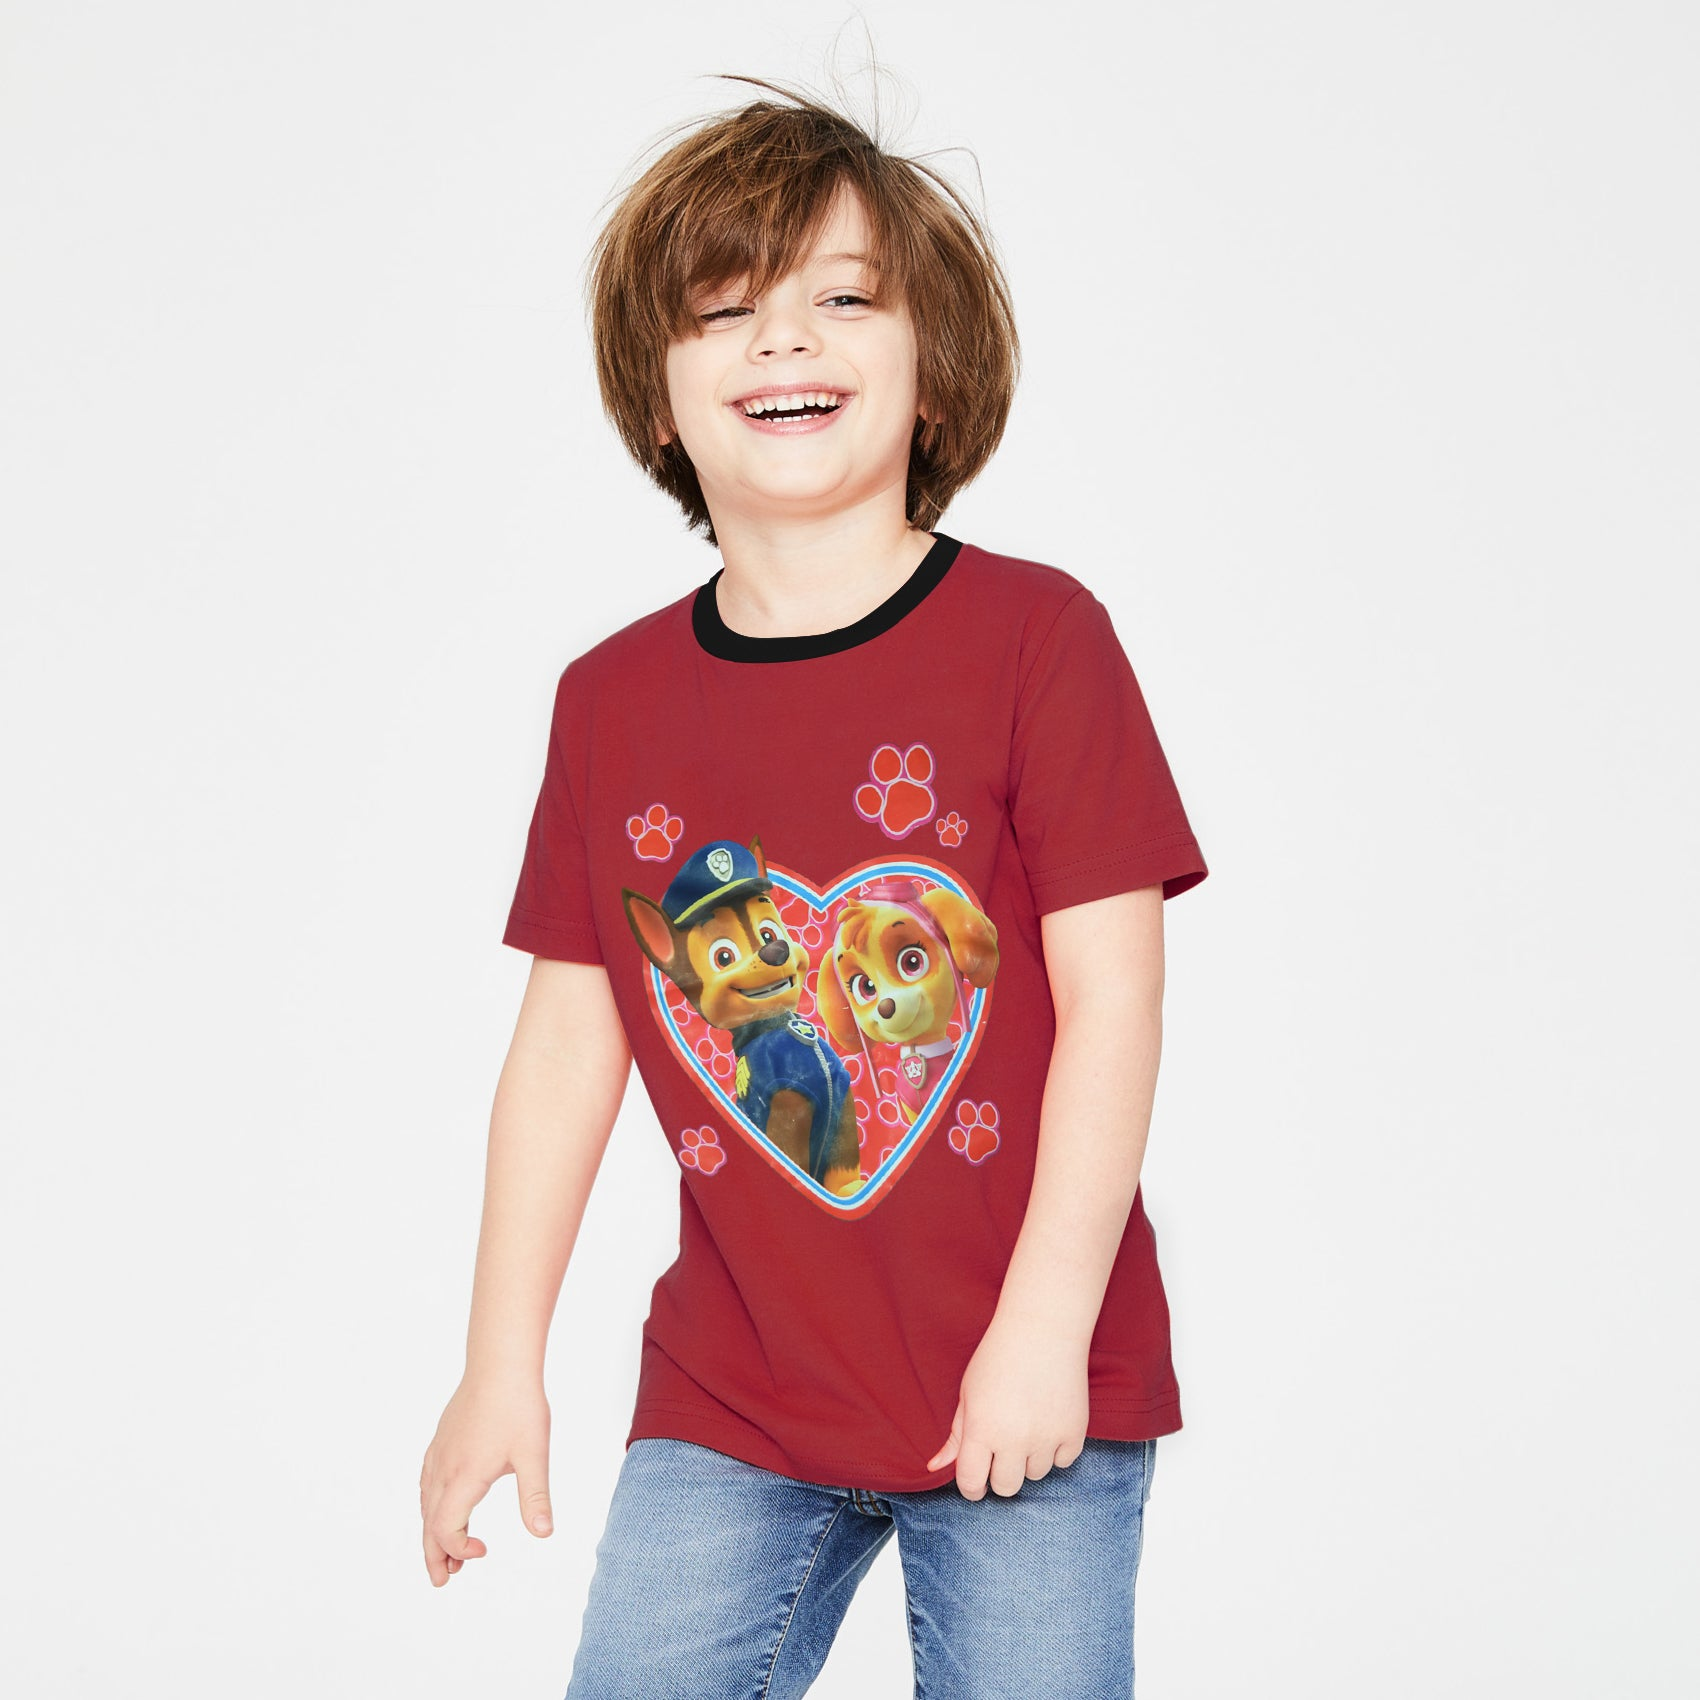 H&M Crew Neck Single Jersey T Shirt For Kids-NA8663